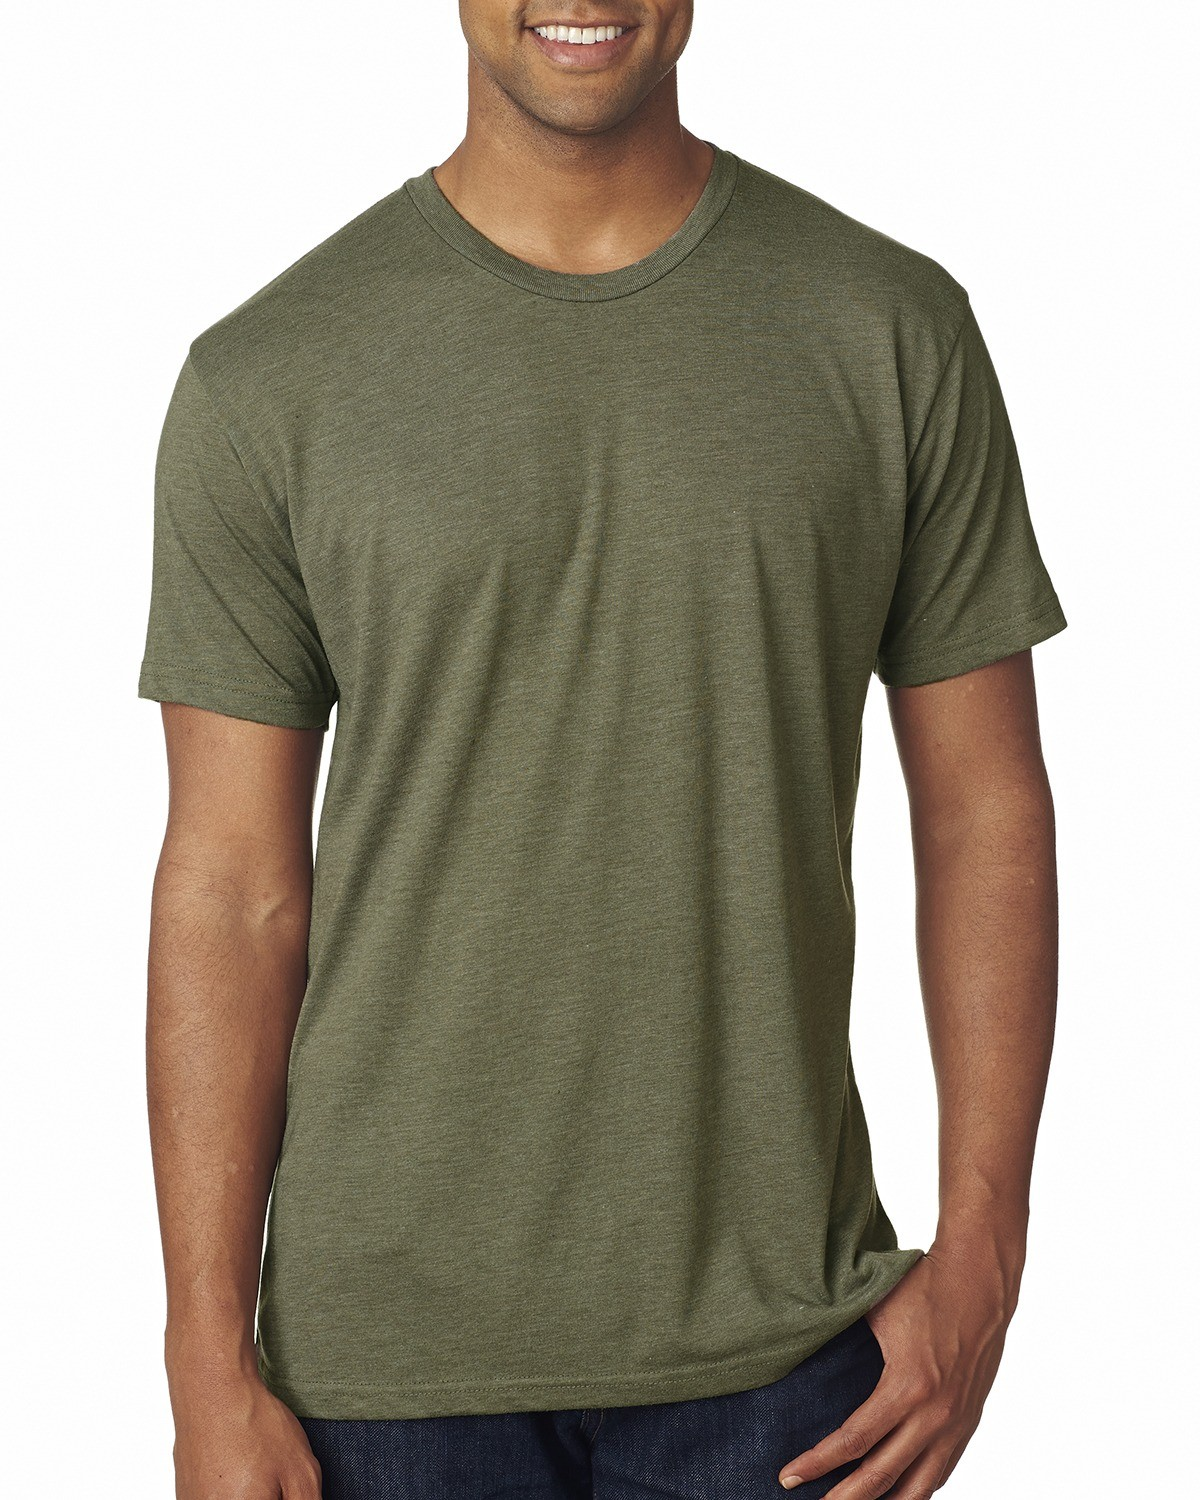 6010A Next Level MILITARY GREEN